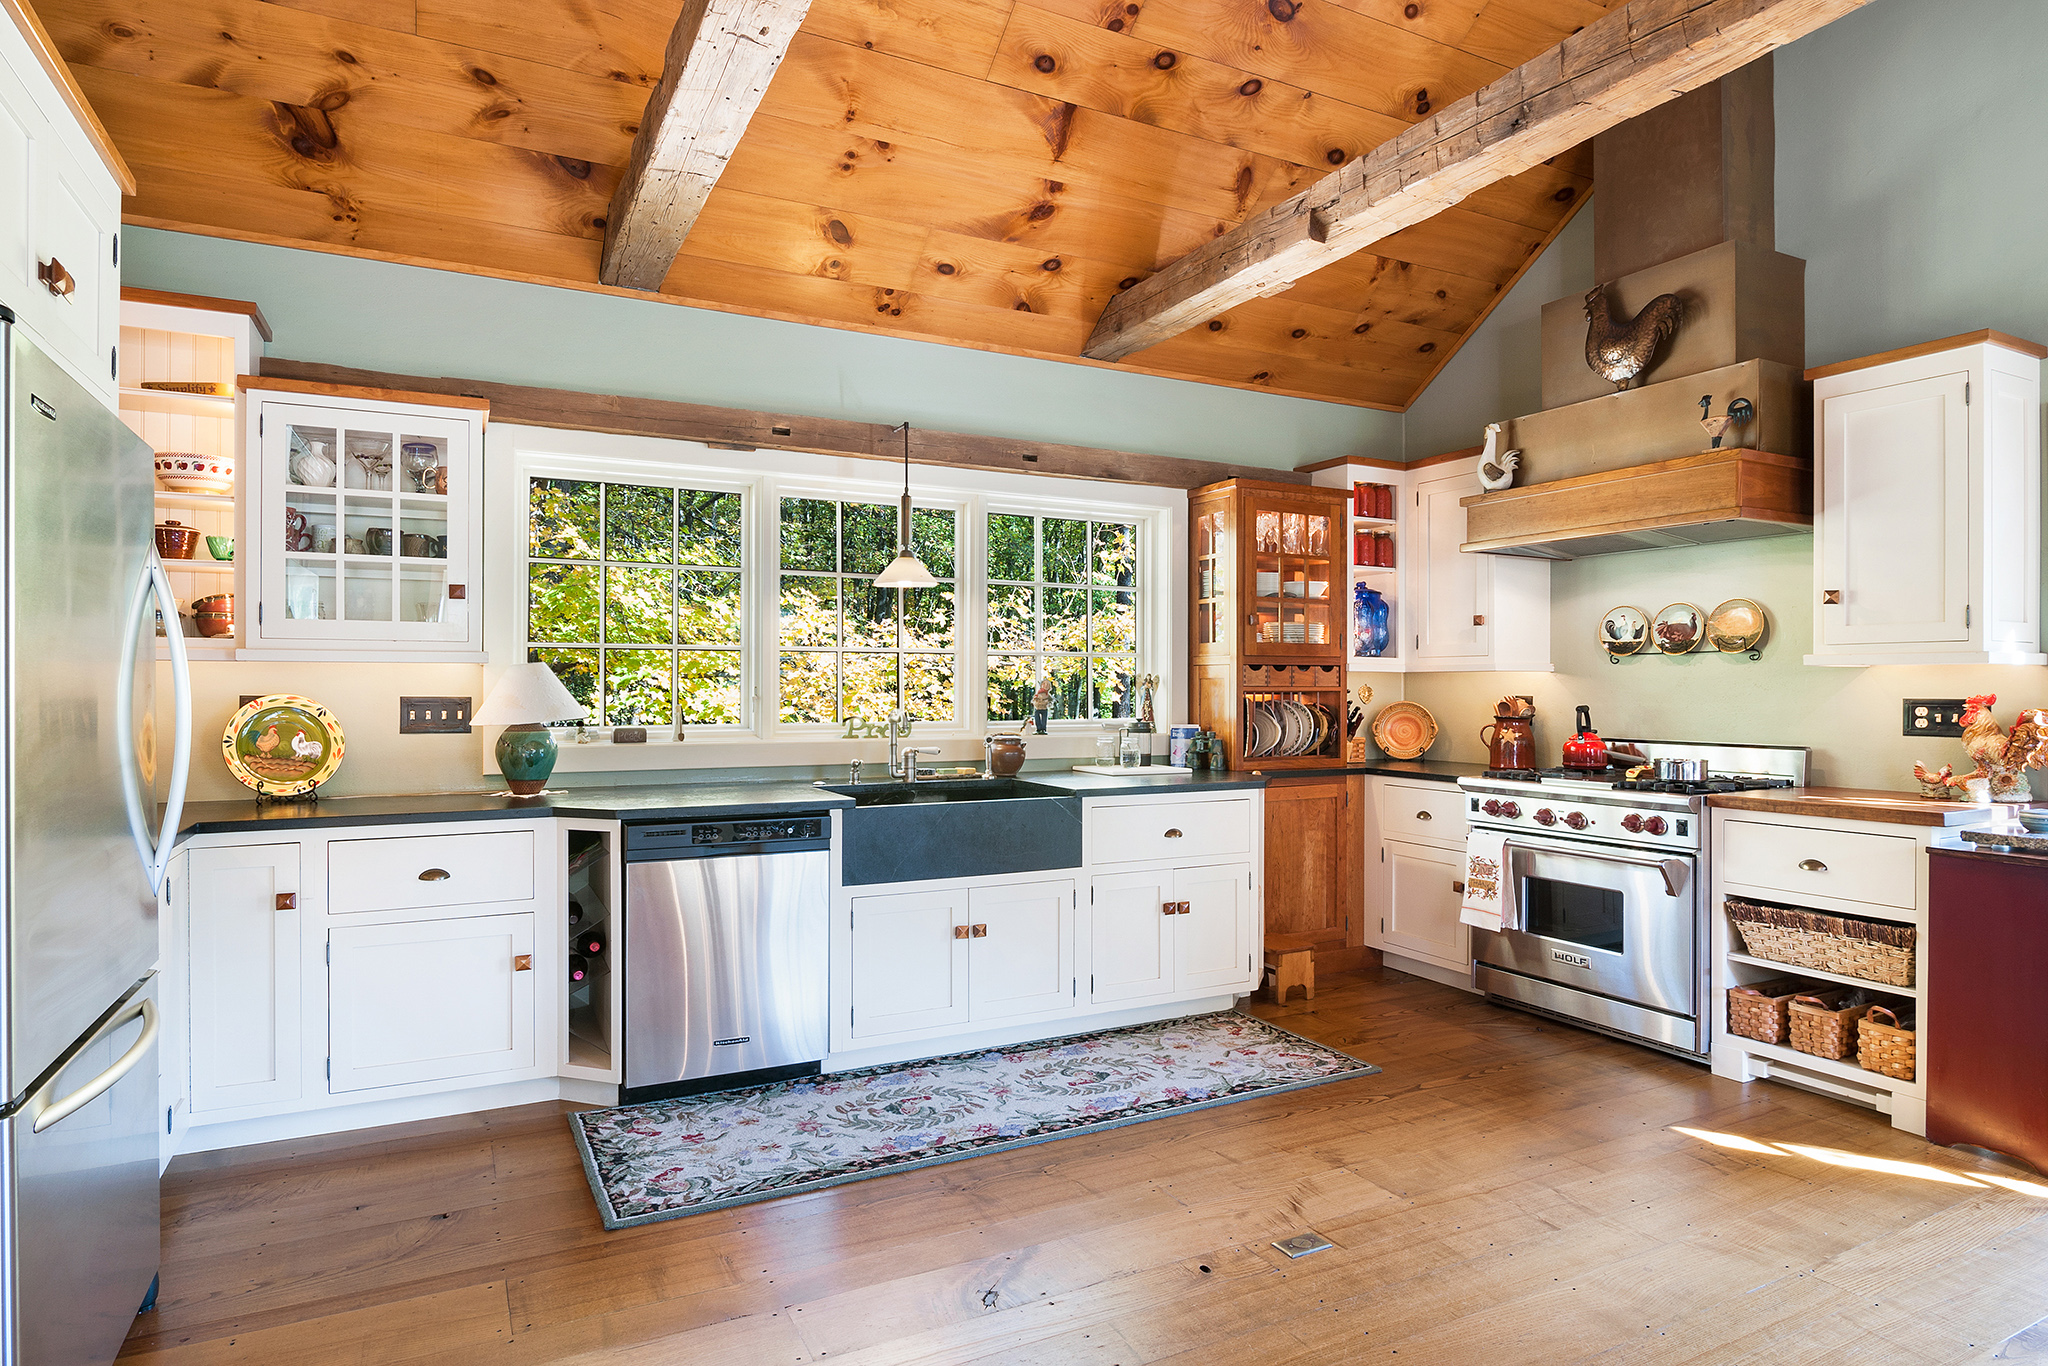 Bucks County Country Kitchen | #BucksCountyCountryKitchen | Bucks County Farmhouse Kitchen | #BucksCountyFarmhouseKitchen